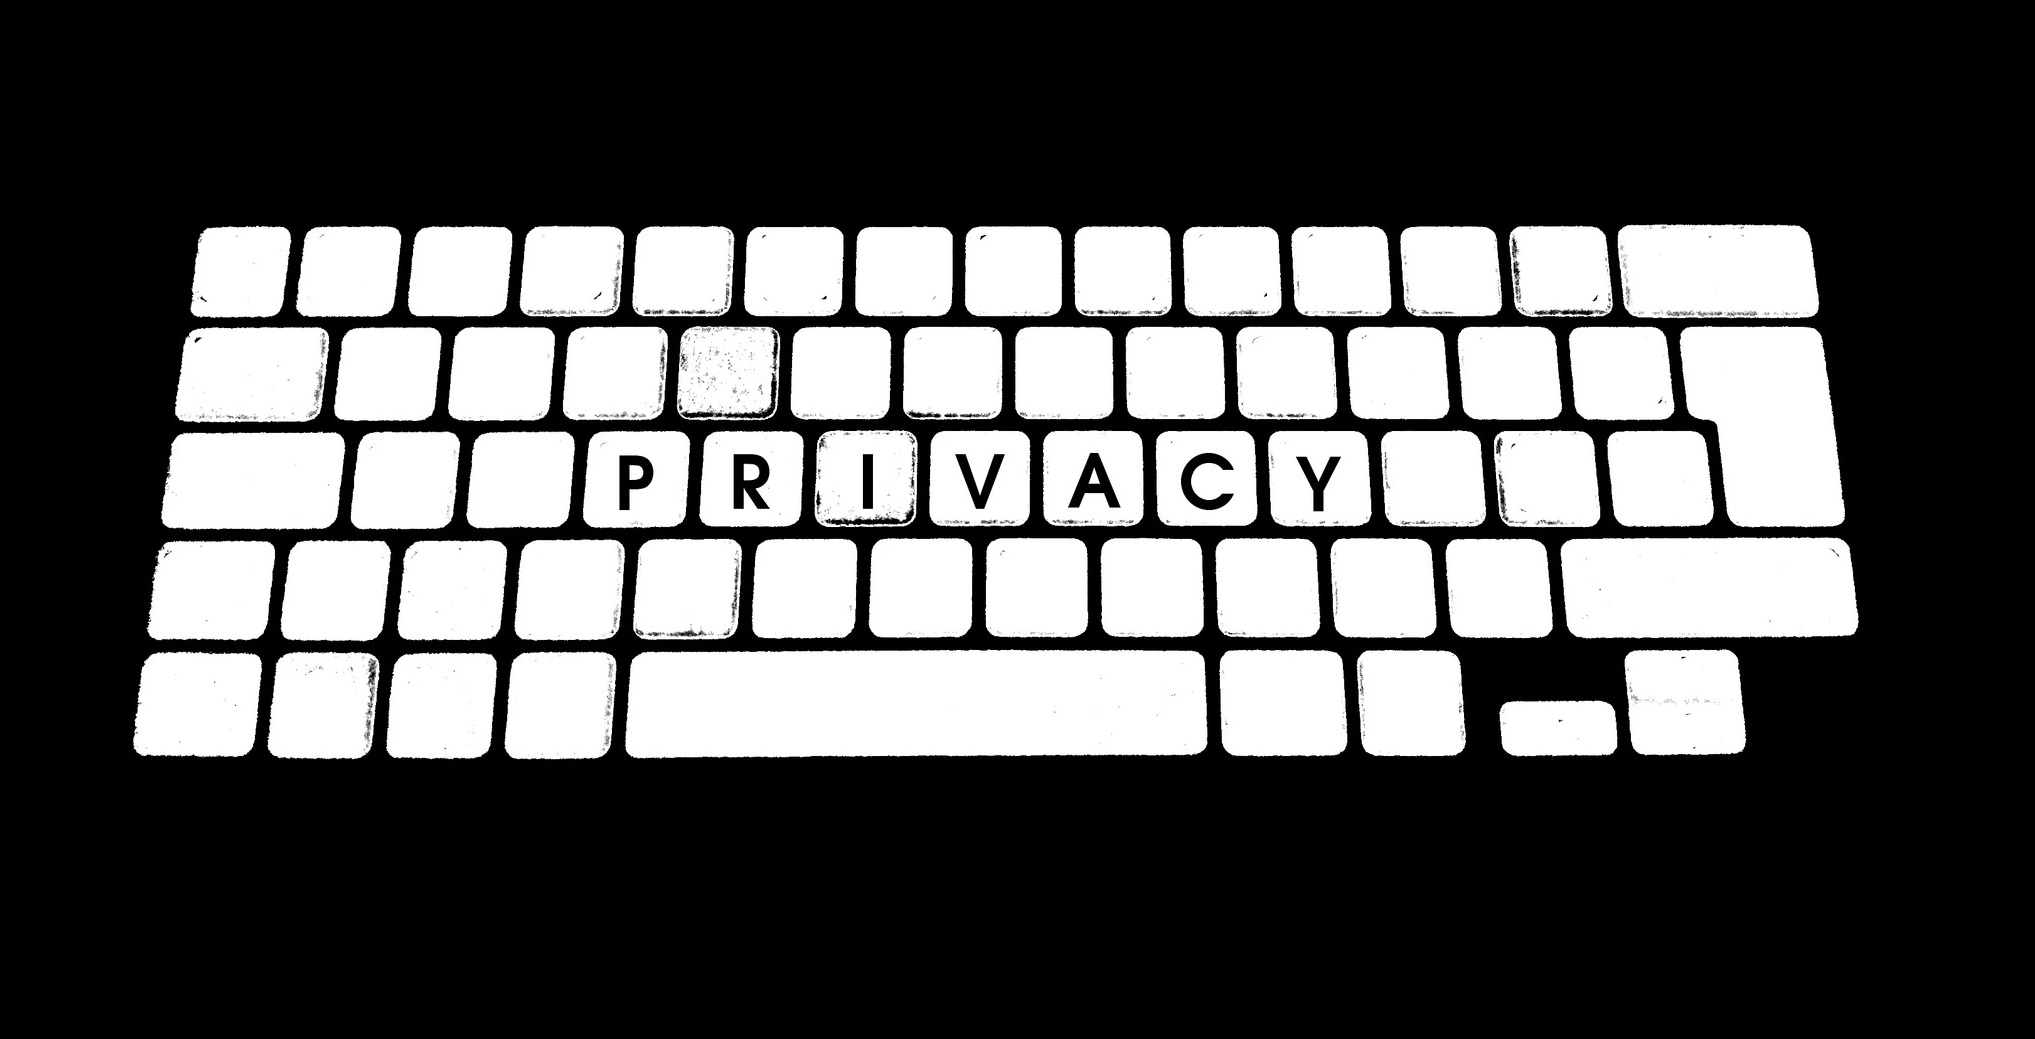 One Year of India's Right to Privacy: No Step Forward and Two Steps Back